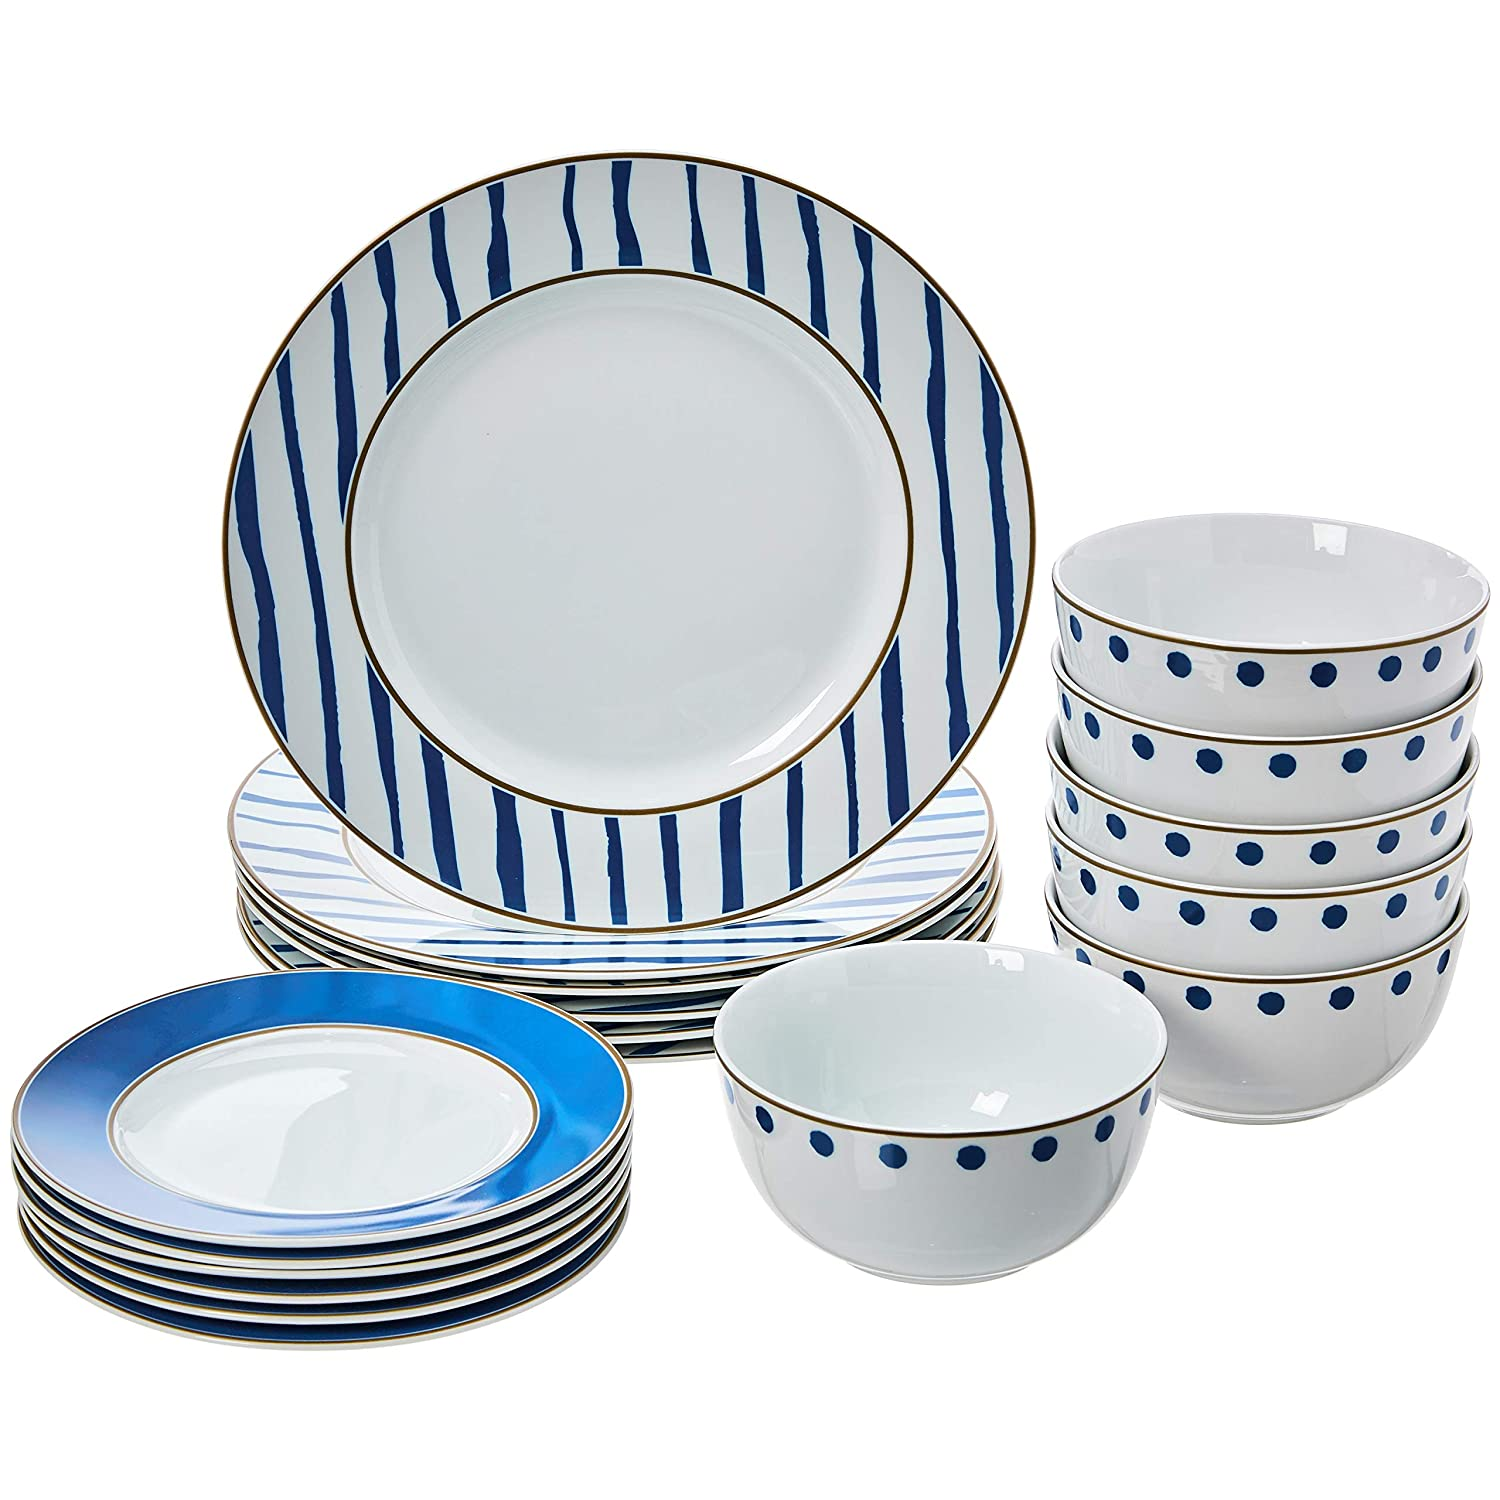 18- piece Kitchen Dinnerware Set by AmazonBasics